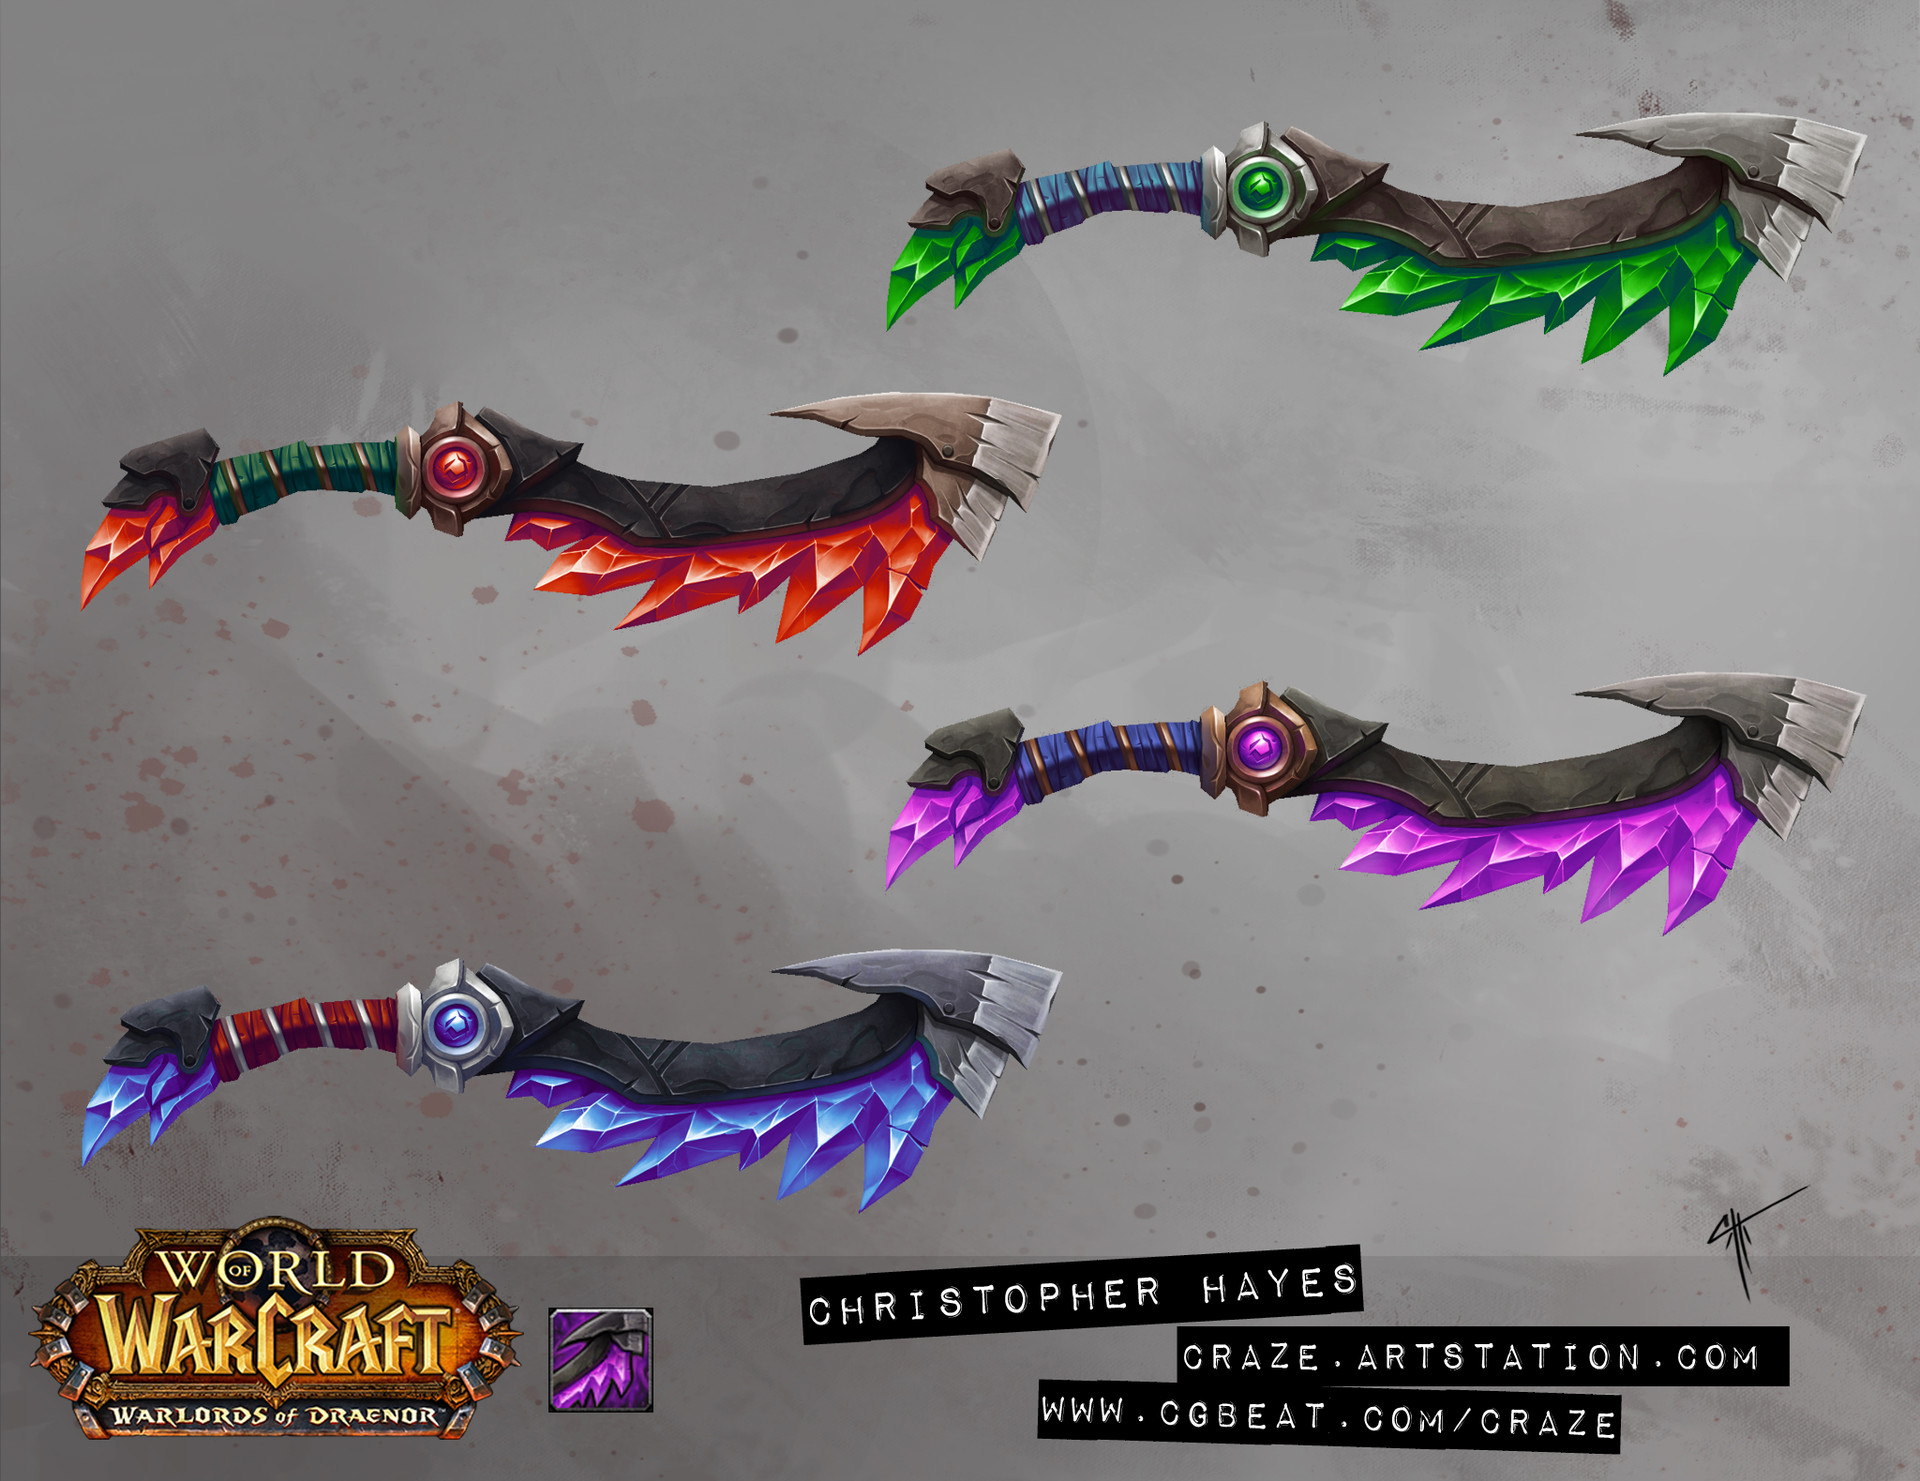 Christopher hayes quest drani sword